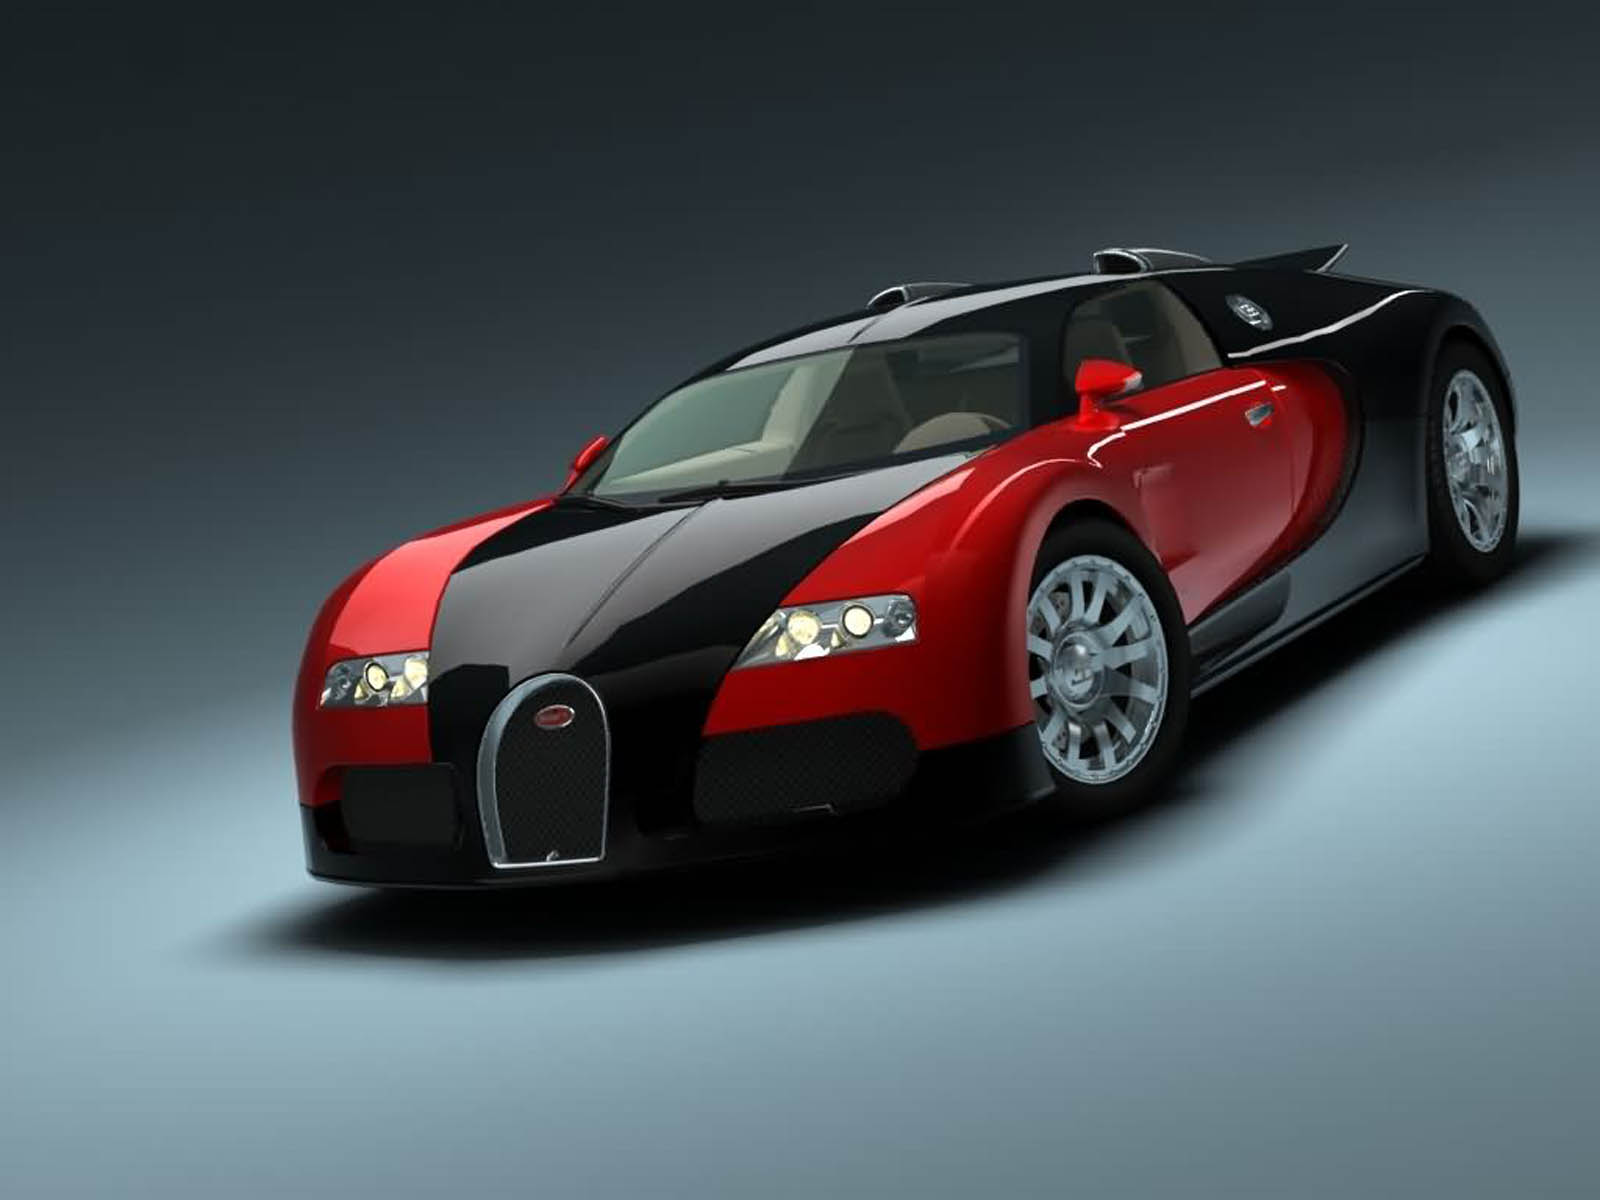 Wallpapers bugatti veyron - Bugatti veyron photos wallpapers ...